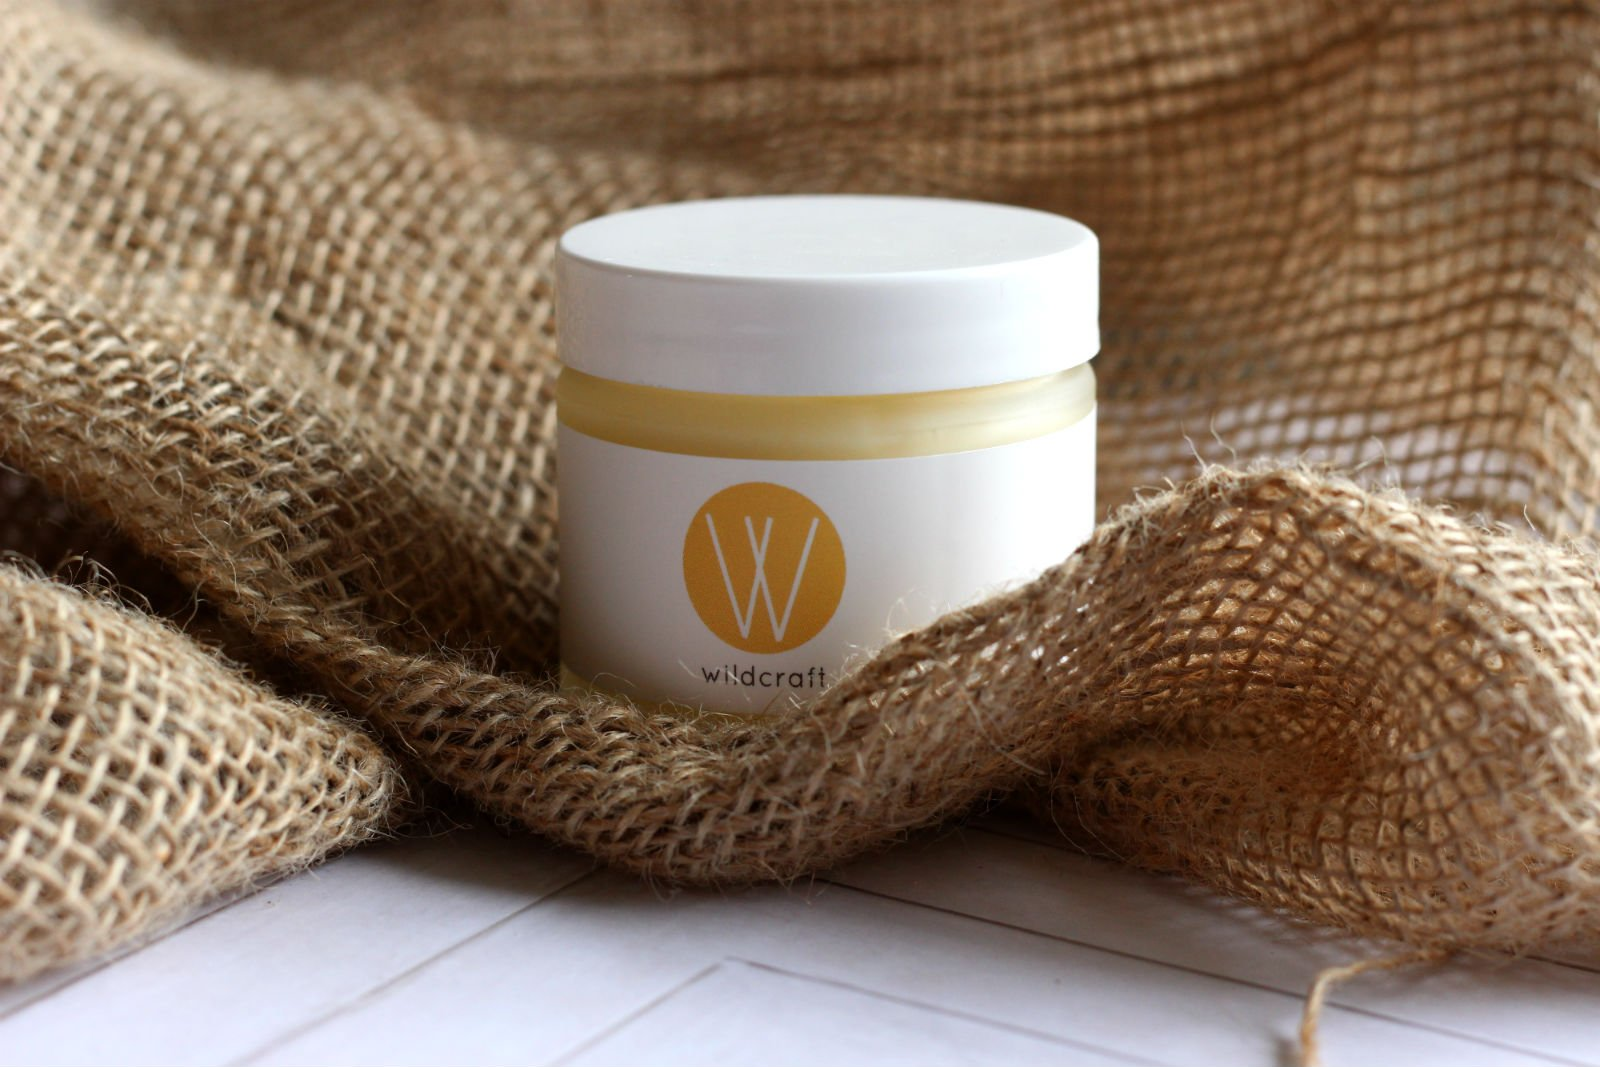 Wildcraft Geranium Orange Blossom Face Cream Review | Green Beauty